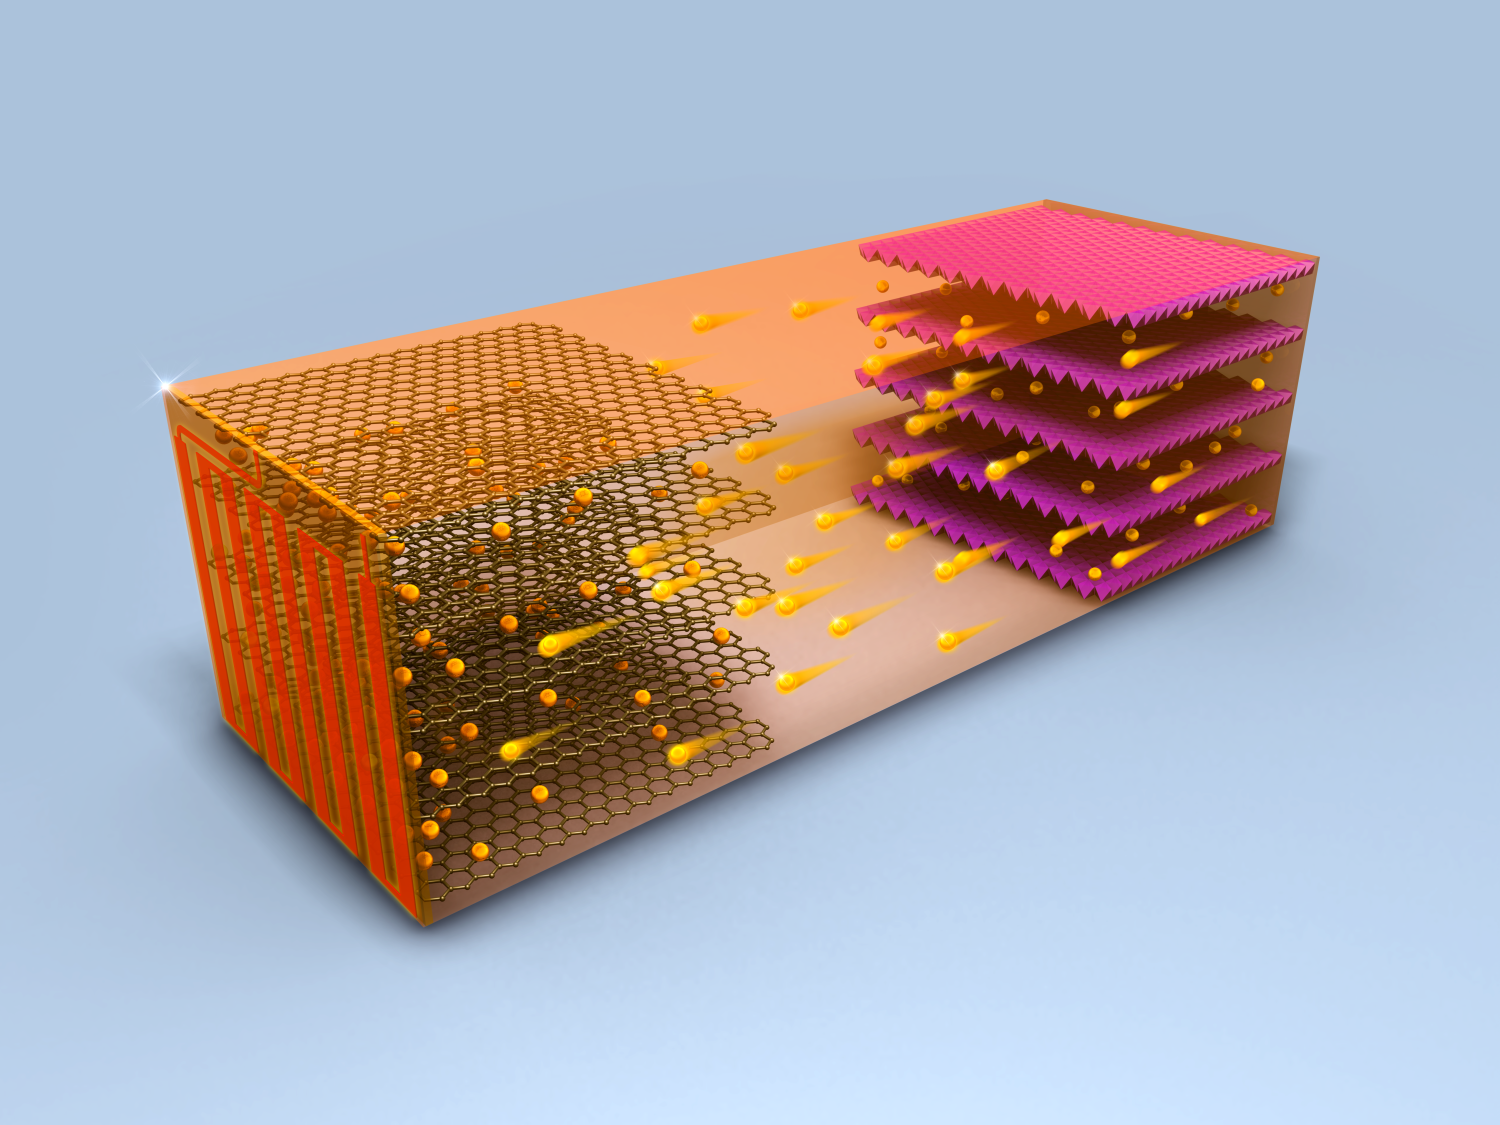 Chao-Yang Wang is developing a new lithium-ion battery that enables faster charging.